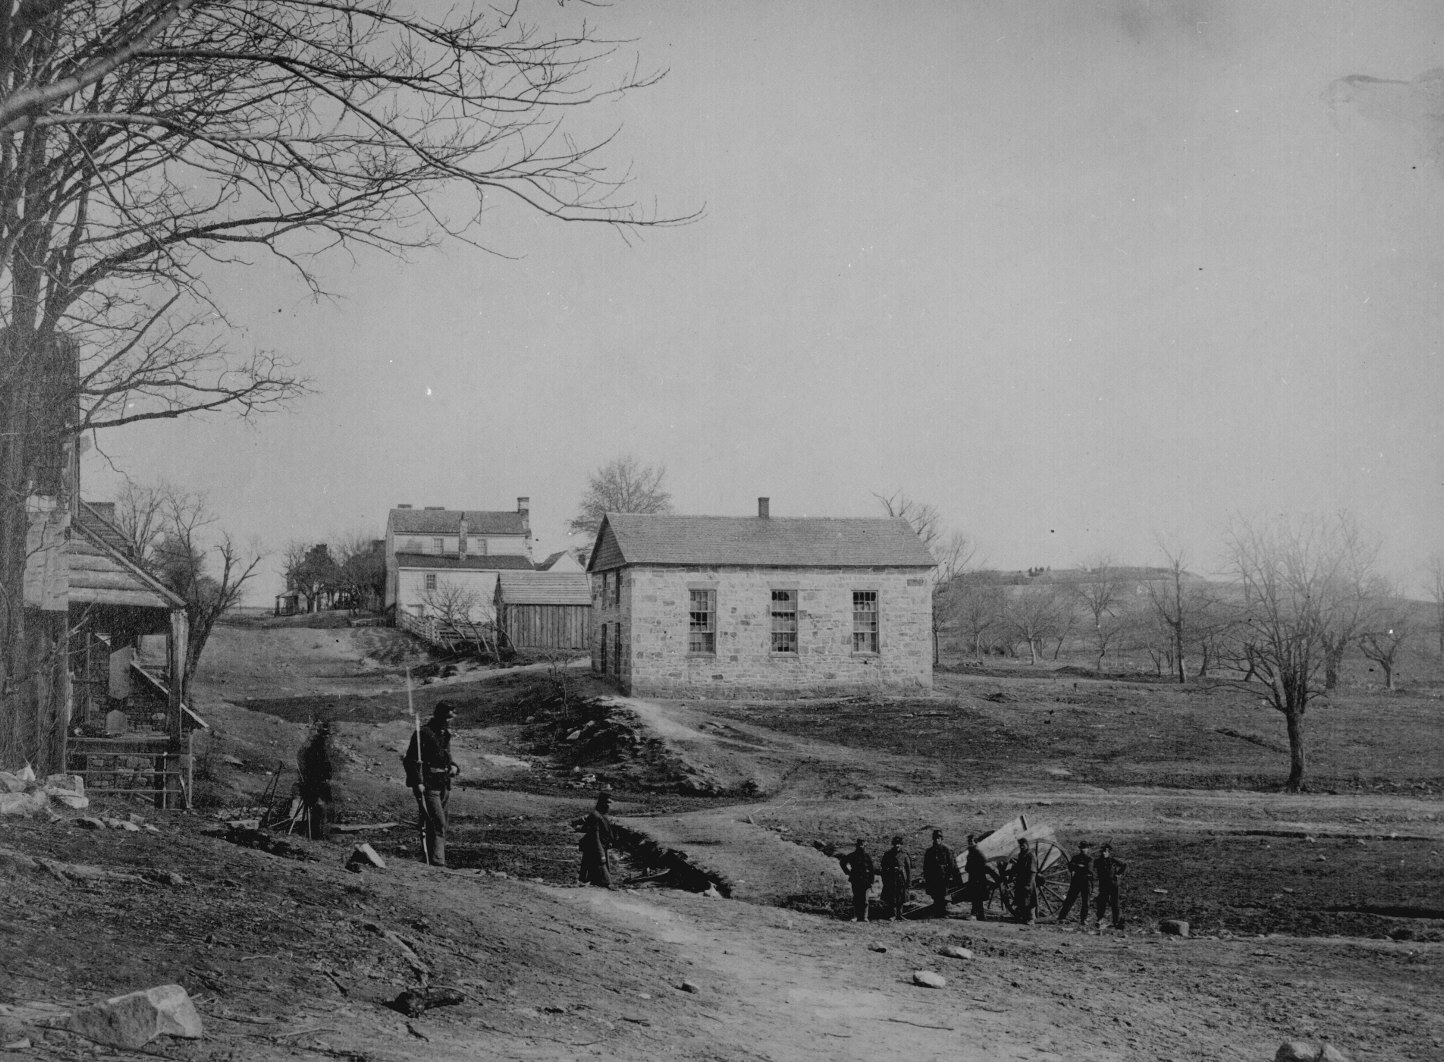 This view of Centreville during the Civil War includes Braddock road and what is now the Centreville Historic district.